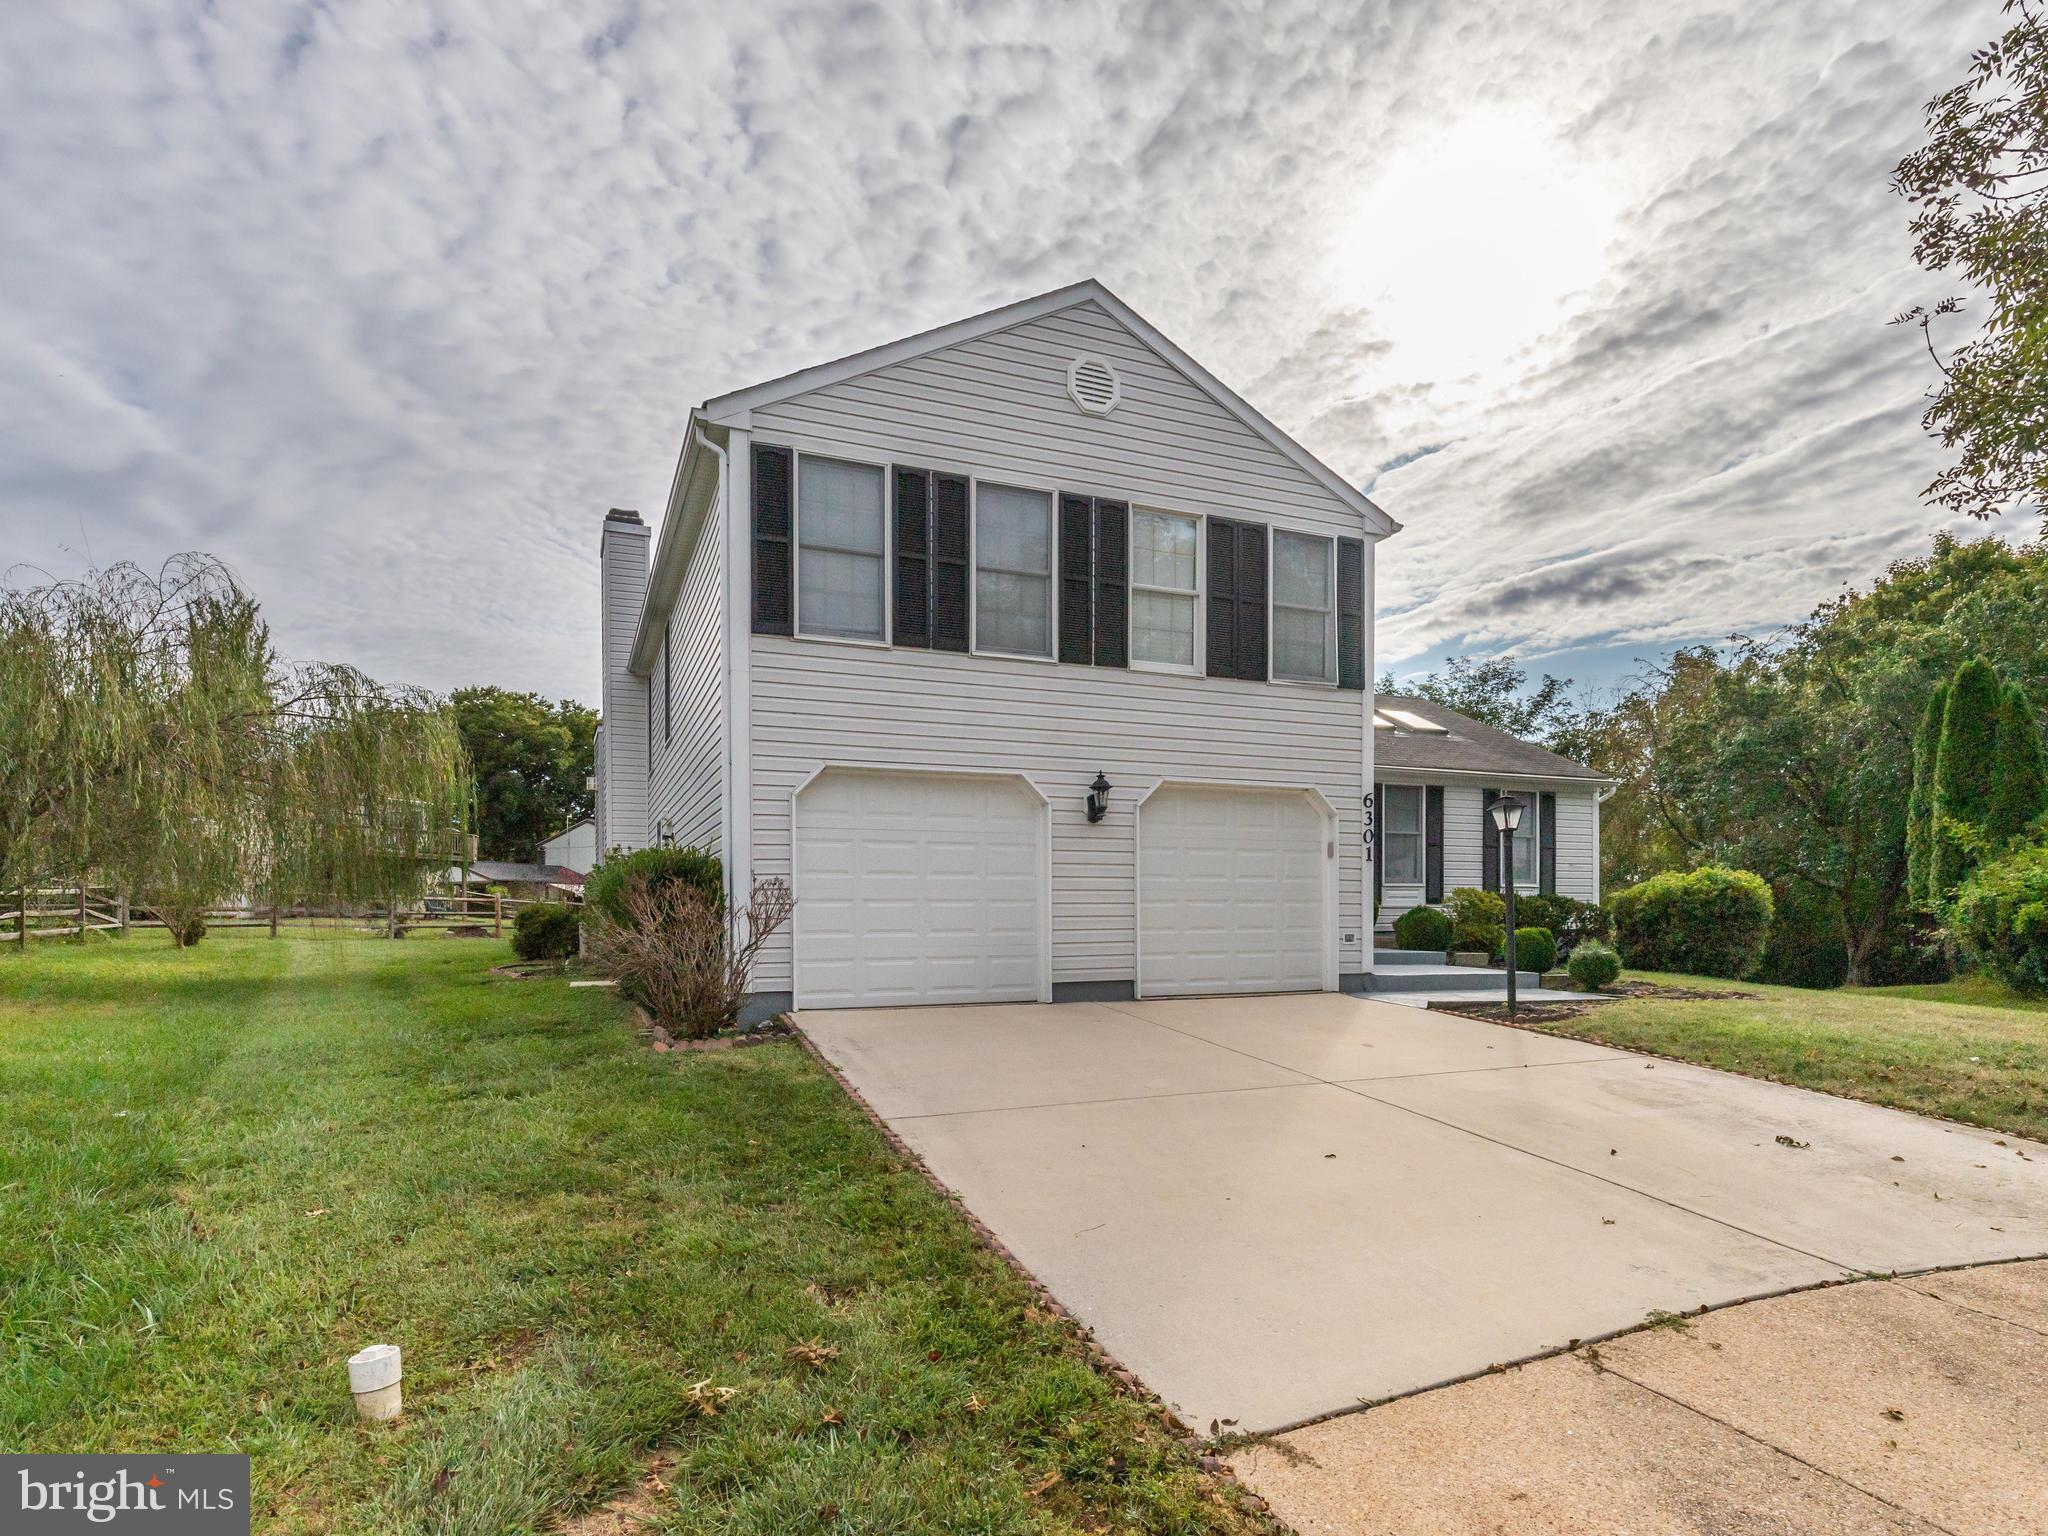 6301 HIDDEN CLEARING, COLUMBIA, MD 21045